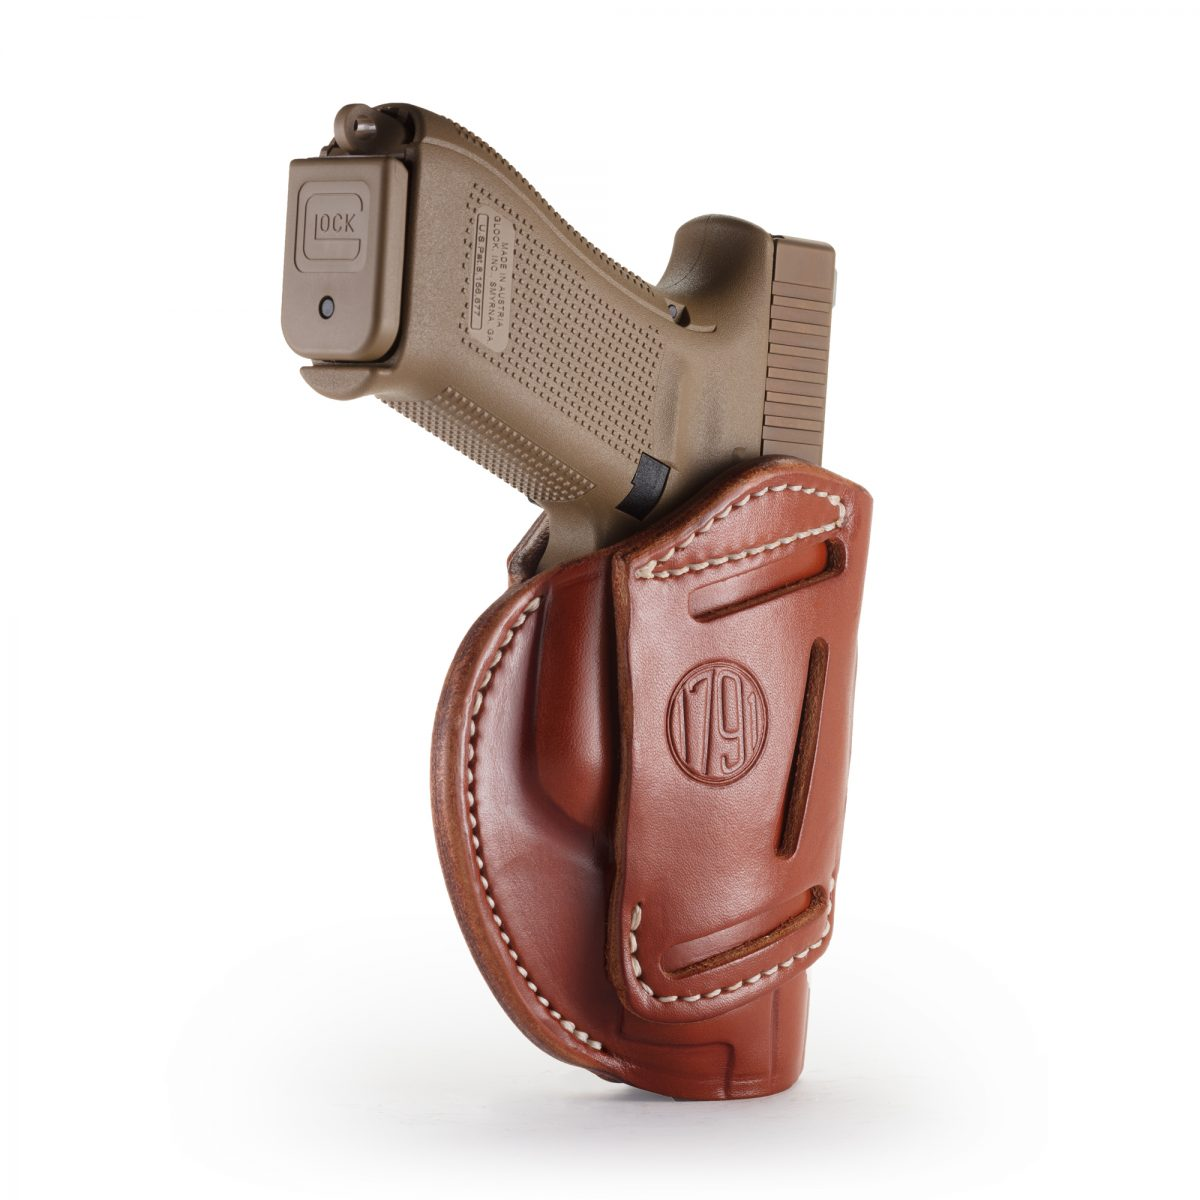 3WH – 3 Way Multi-Fit OWB Concealment Holster